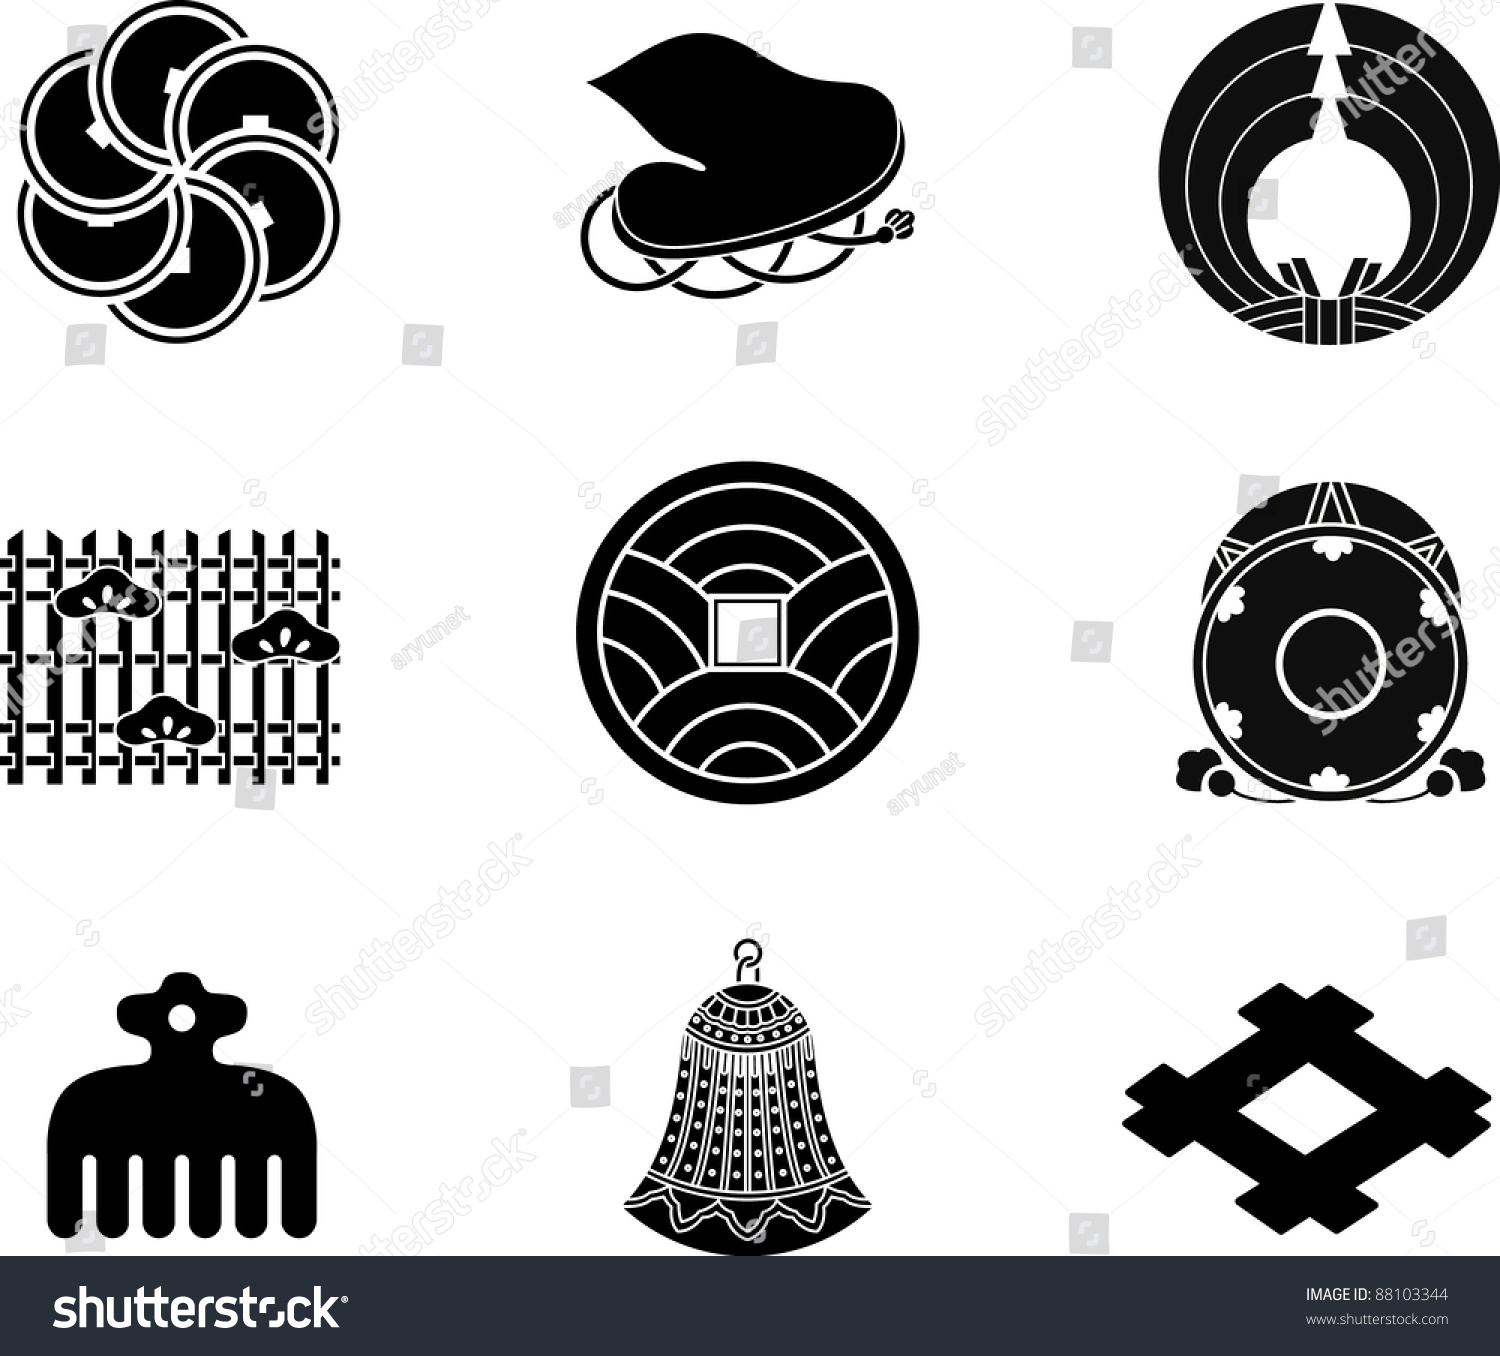 Japanese family crests vector stock vector 88103344 shutterstock japanese family crests vector biocorpaavc